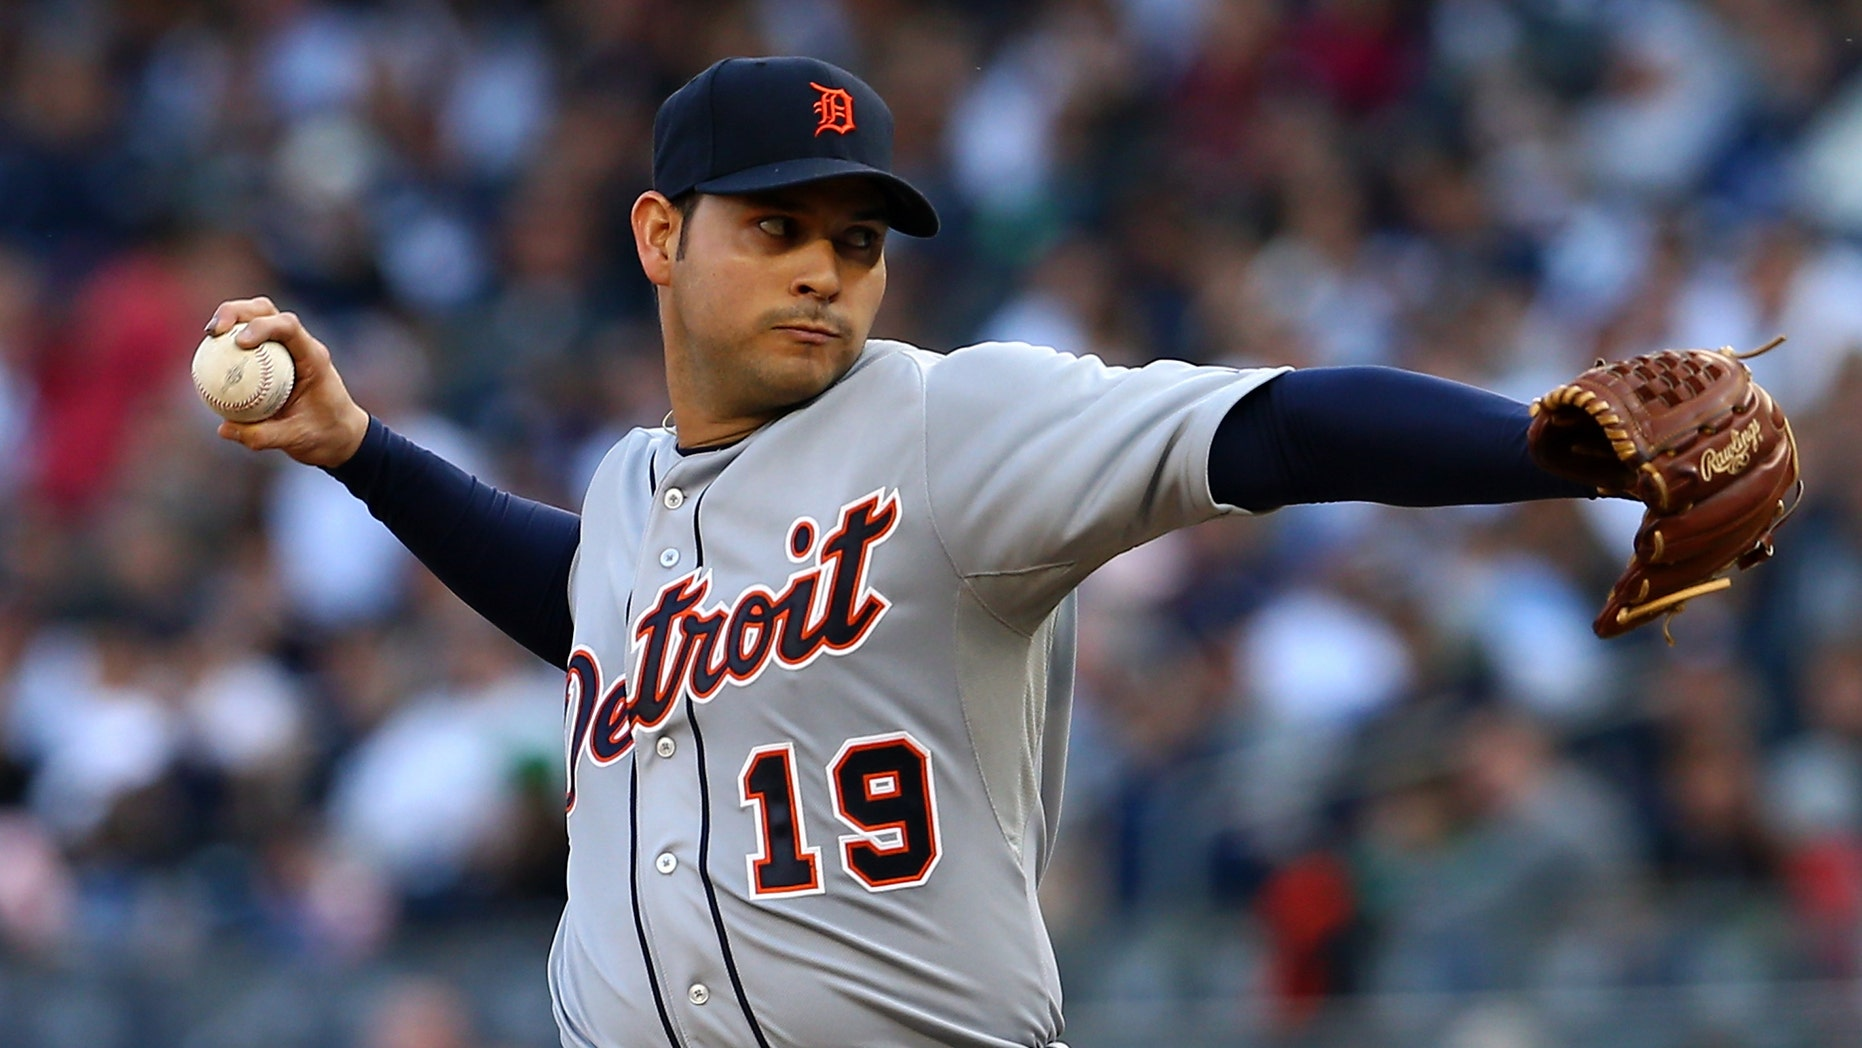 NEW YORK, NY - OCTOBER 14:  Anibal Sanchez #19 of the Detroit Tigers throws a pitch against the New York Yankees during Game Two of the American League Championship Series at Yankee Stadium on October 14, 2012 in the Bronx borough of New York City.  (Photo by Alex Trautwig/Getty Images)